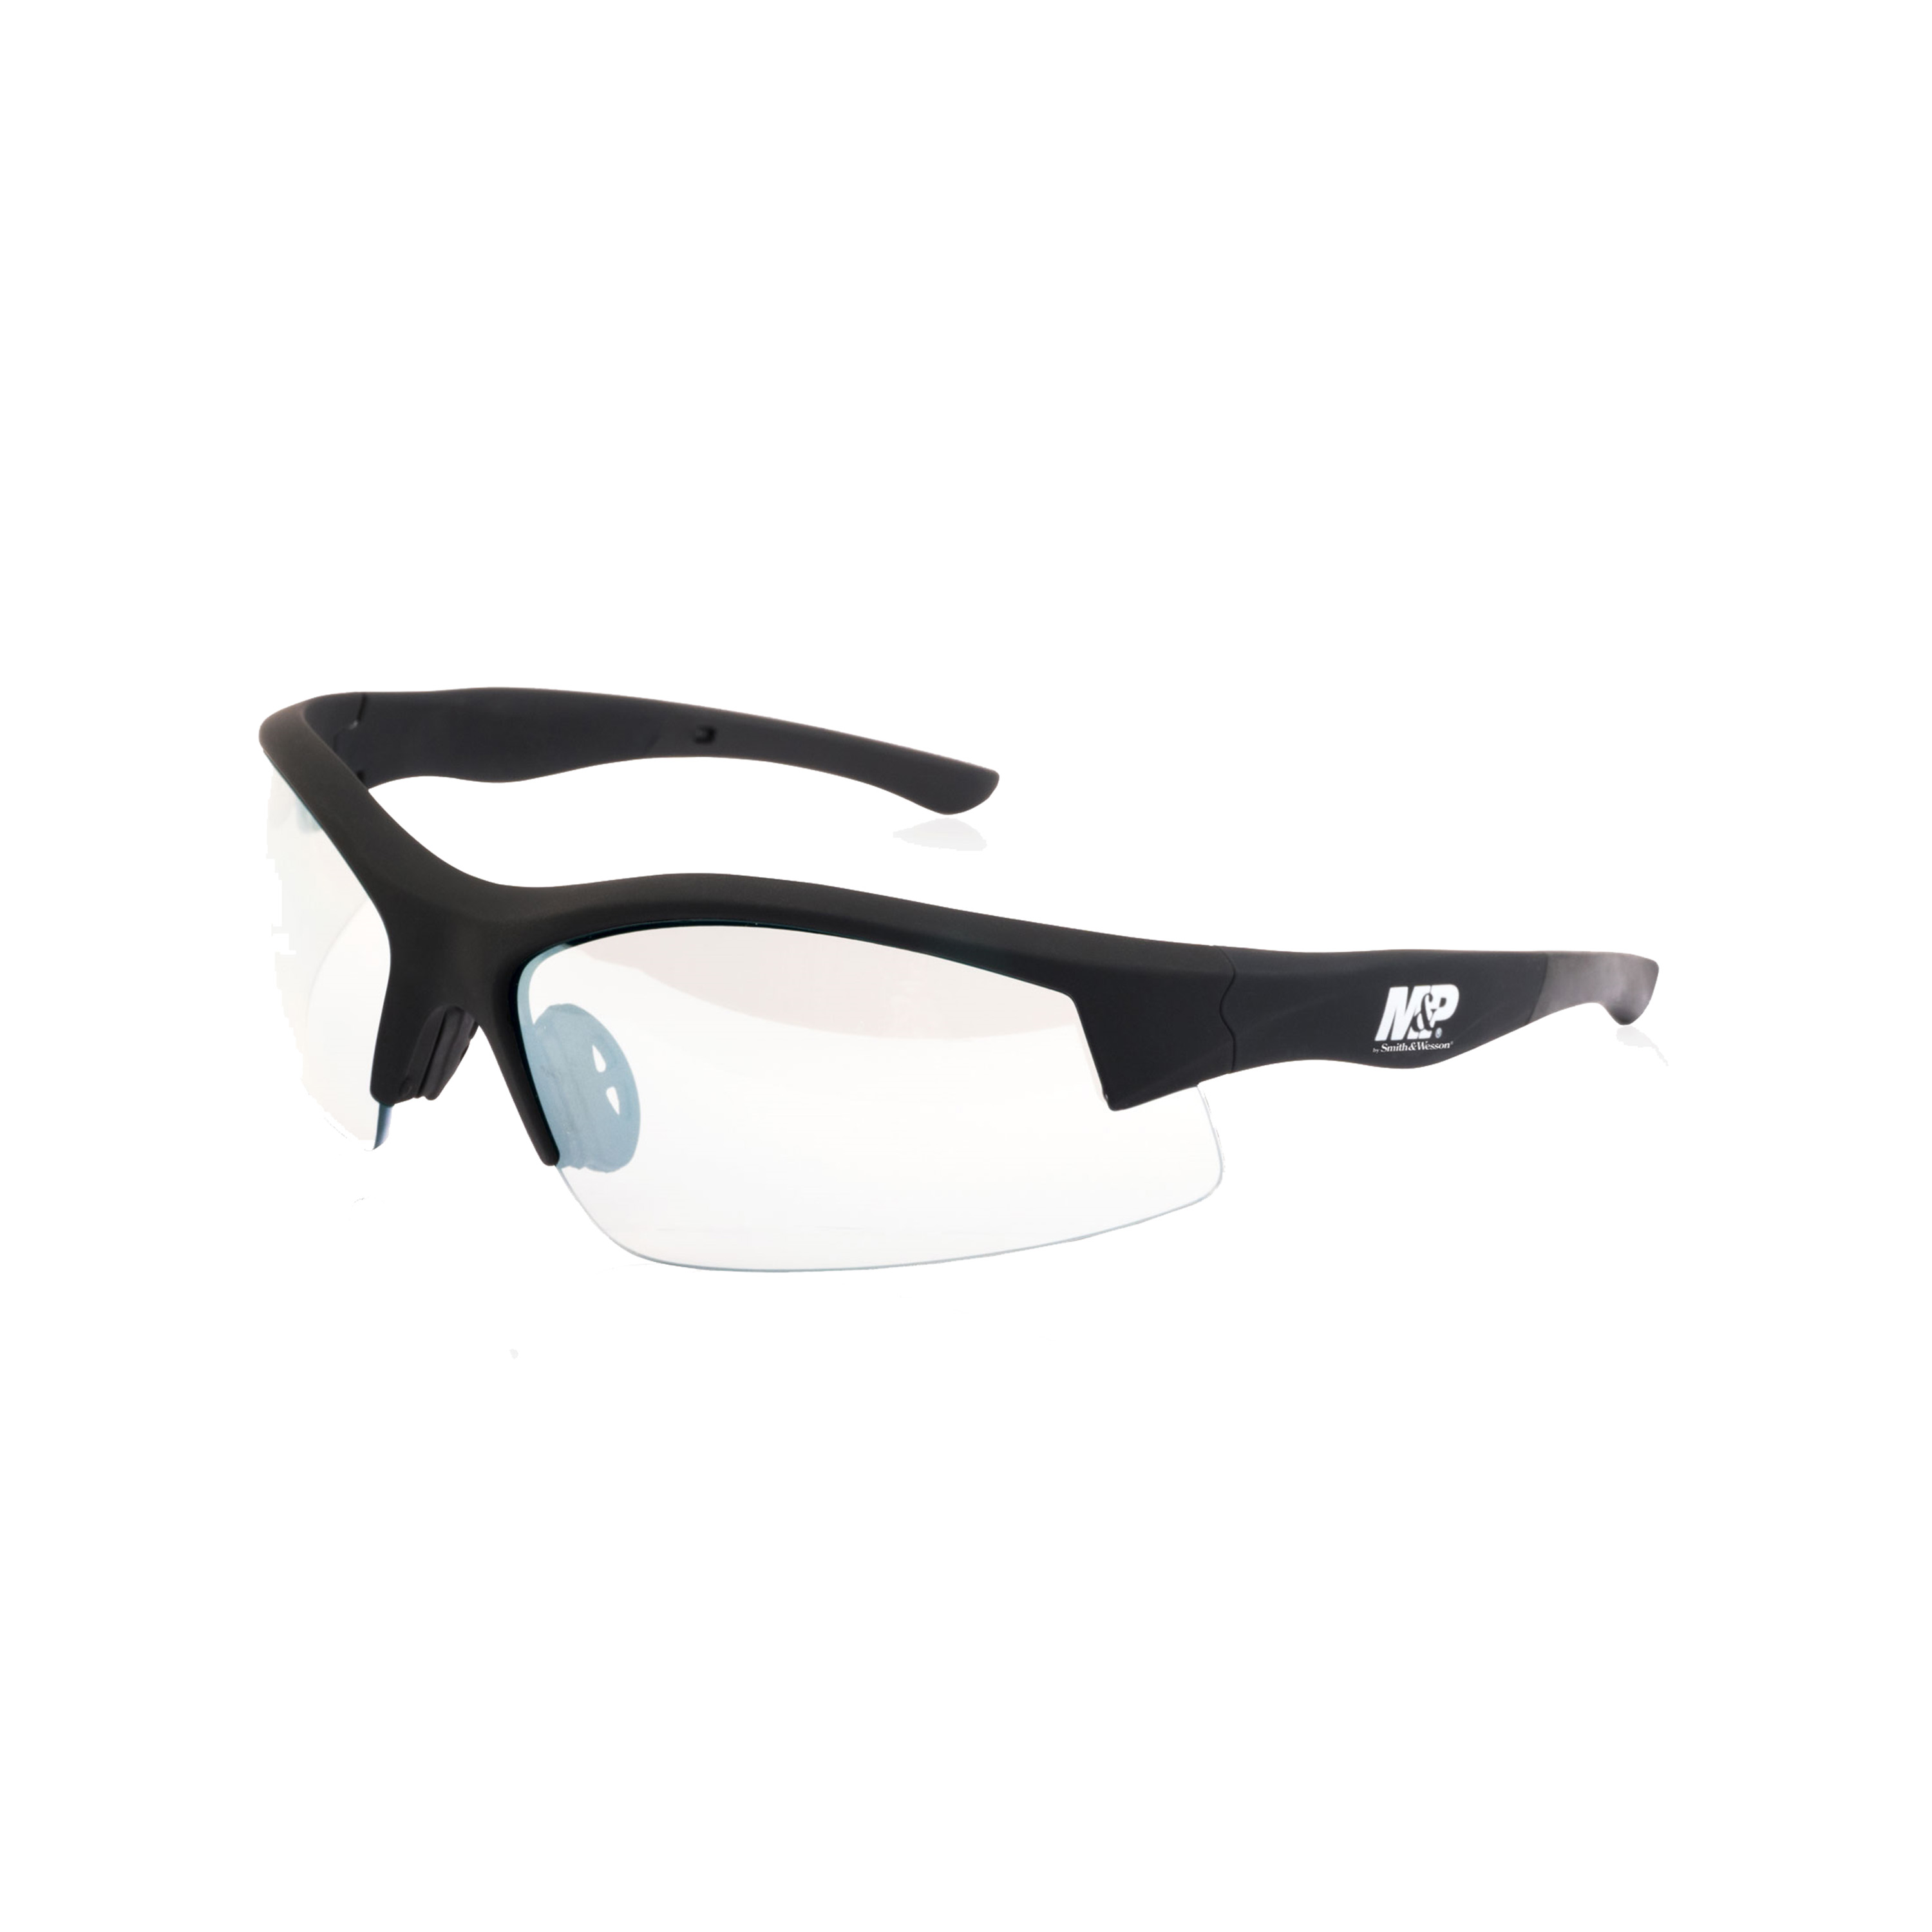 Smith & Wesson Accessories M&P Super Cobra Shooting Glasses Black Frame, Clear Mirrored Lens - Walmart.com | Tuggl